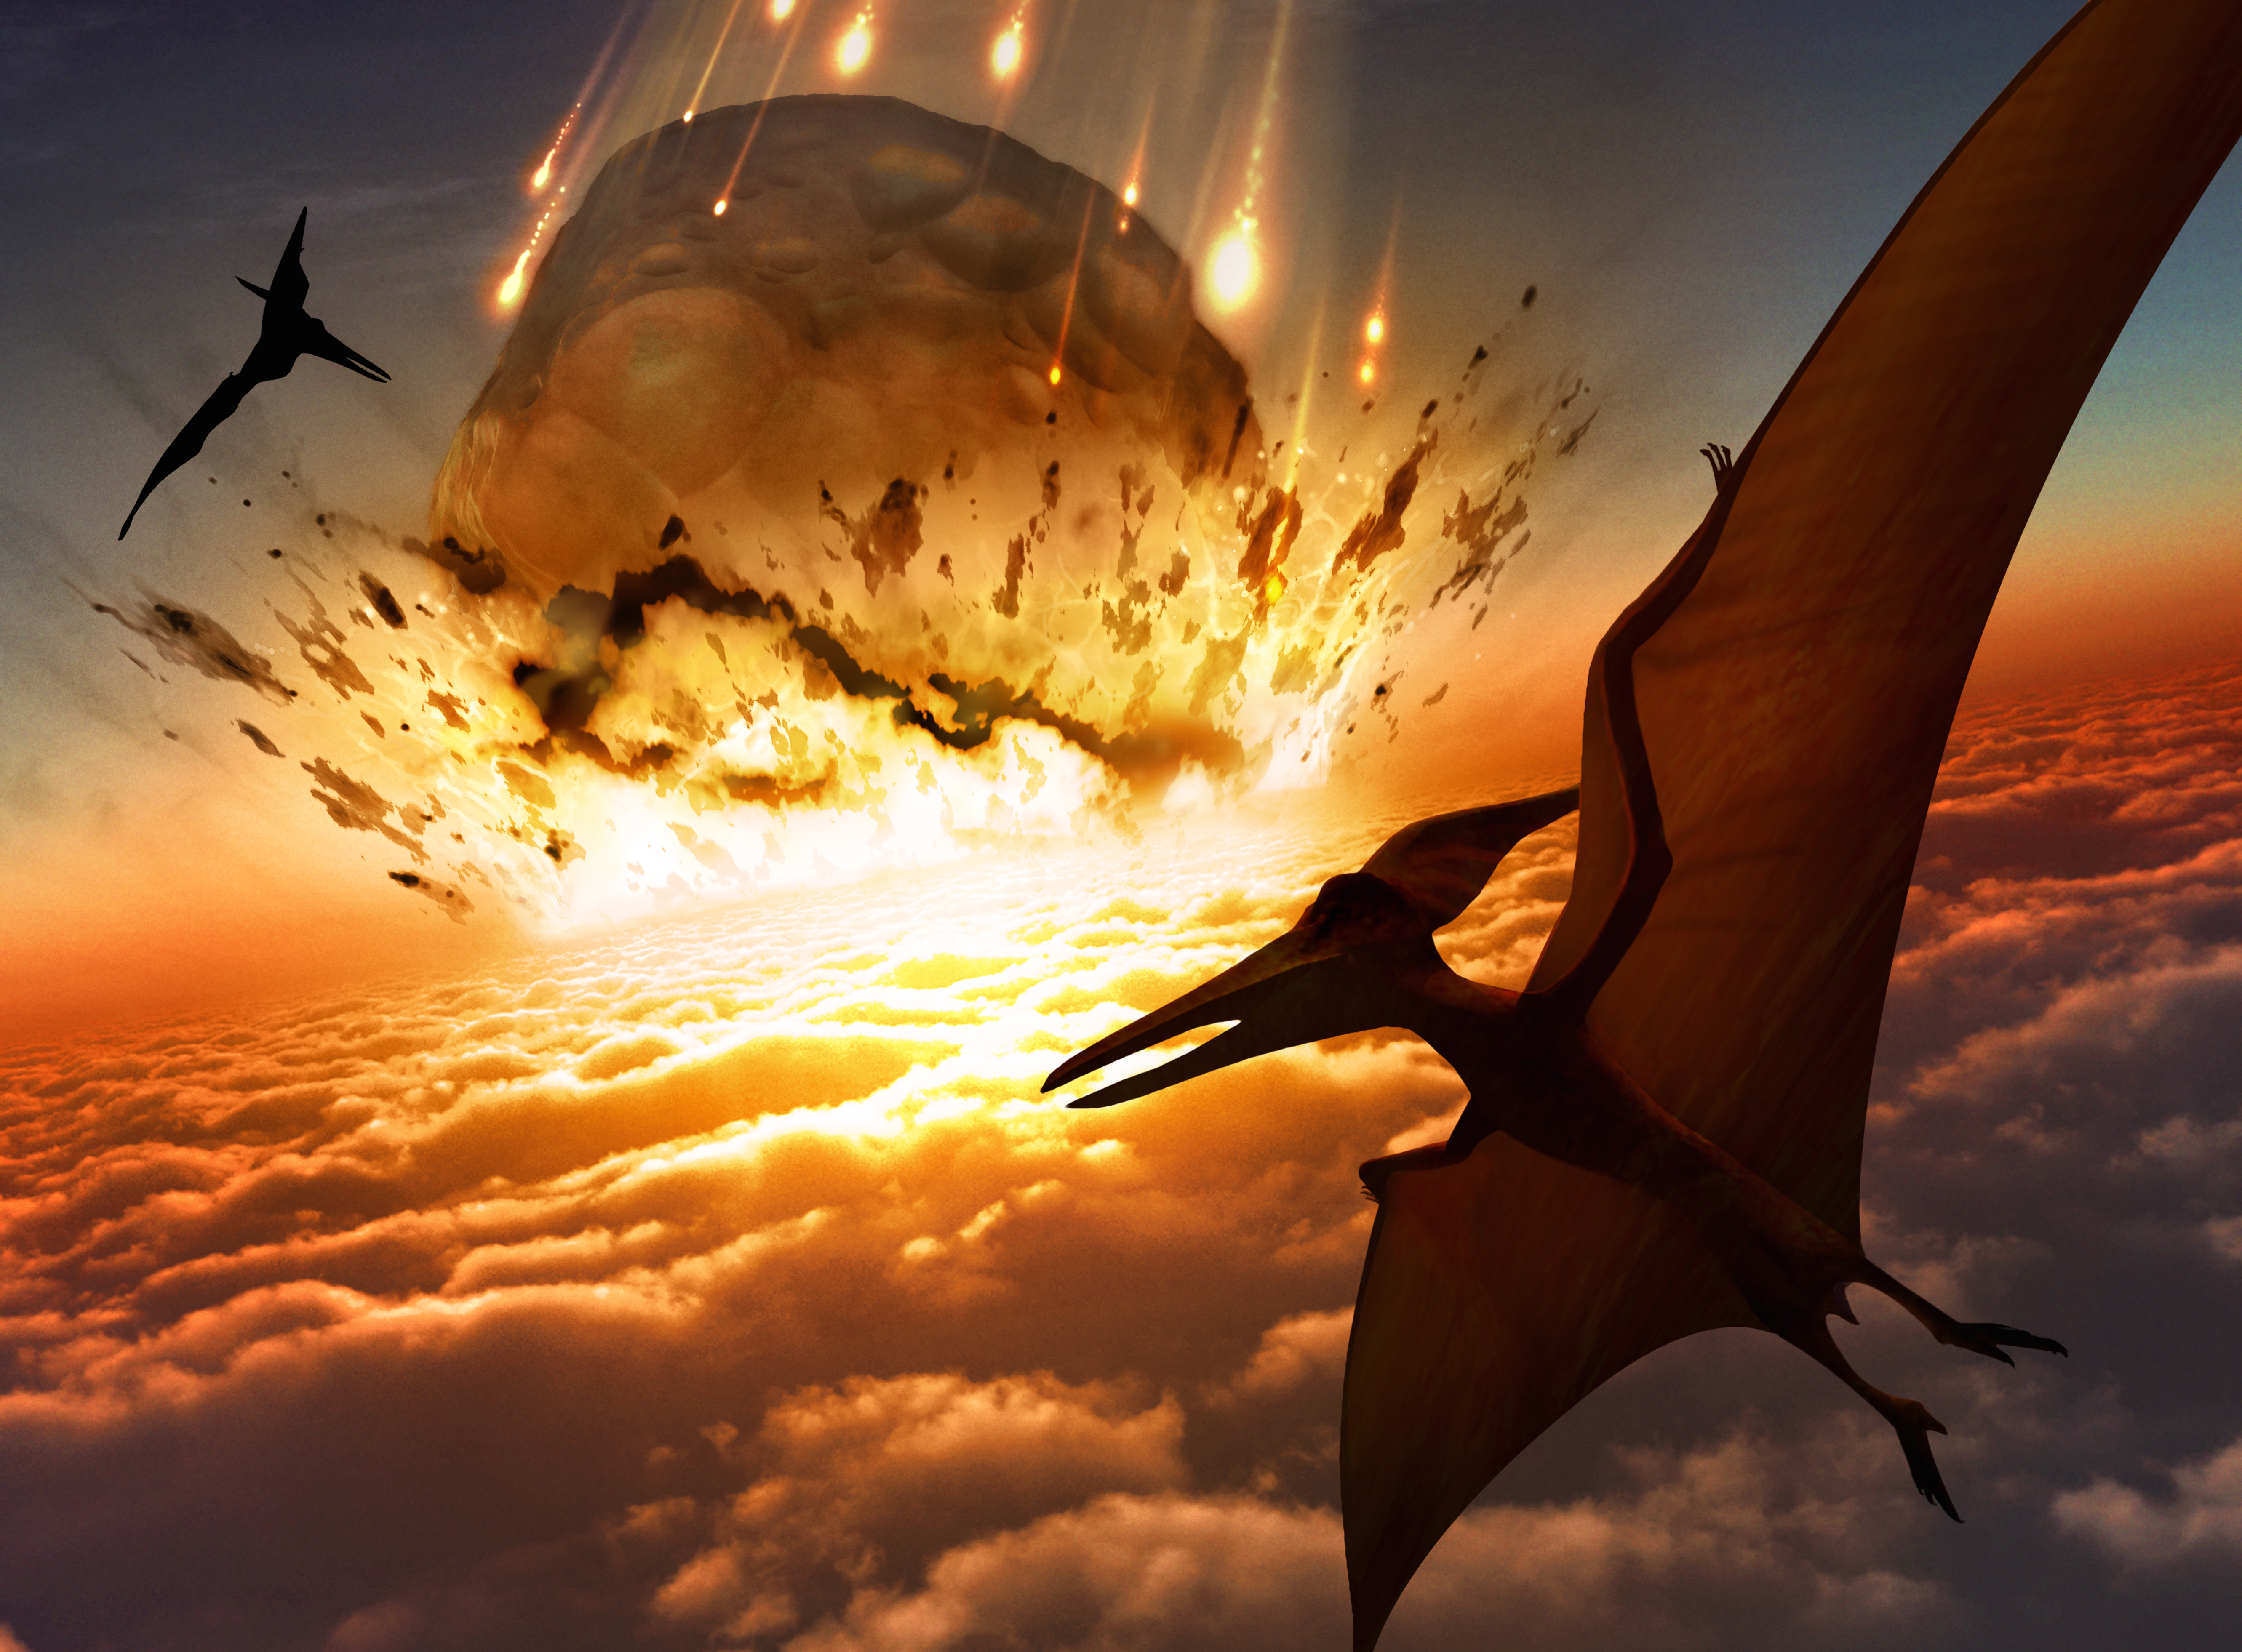 Illustration of Pteranodon sp. flying reptiles watching a massive asteroid approaching Earth's surface. A similar impact is believed to have led to the death of the dinosaurs some 65 million years ago. The impact would have thrown trillions of tons of dust into the atmosphere, cooling the Earth's climate significantly, which may have been responsible for the mass extinction. A layer of iridium-rich rock, known as the K-pg boundary, is thought to be the remnants of the impact debris.